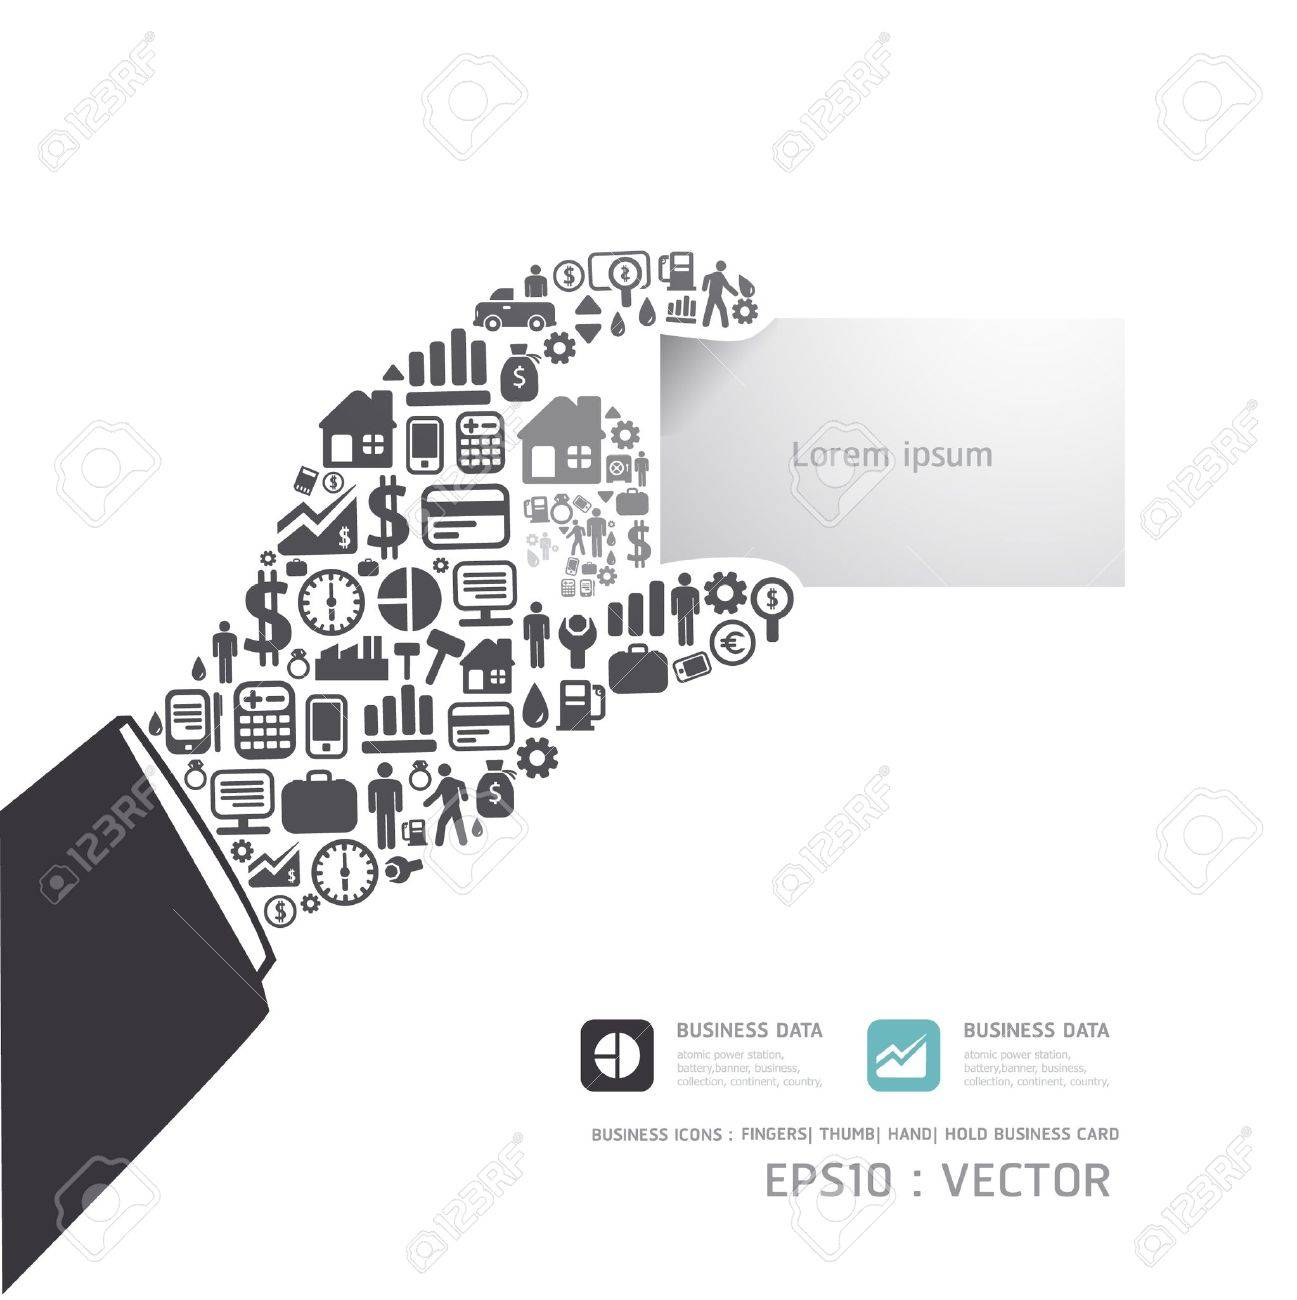 Elements are small icons Finance make in hand hold business card shape concept  Vector illustration Stock Vector - 15534194